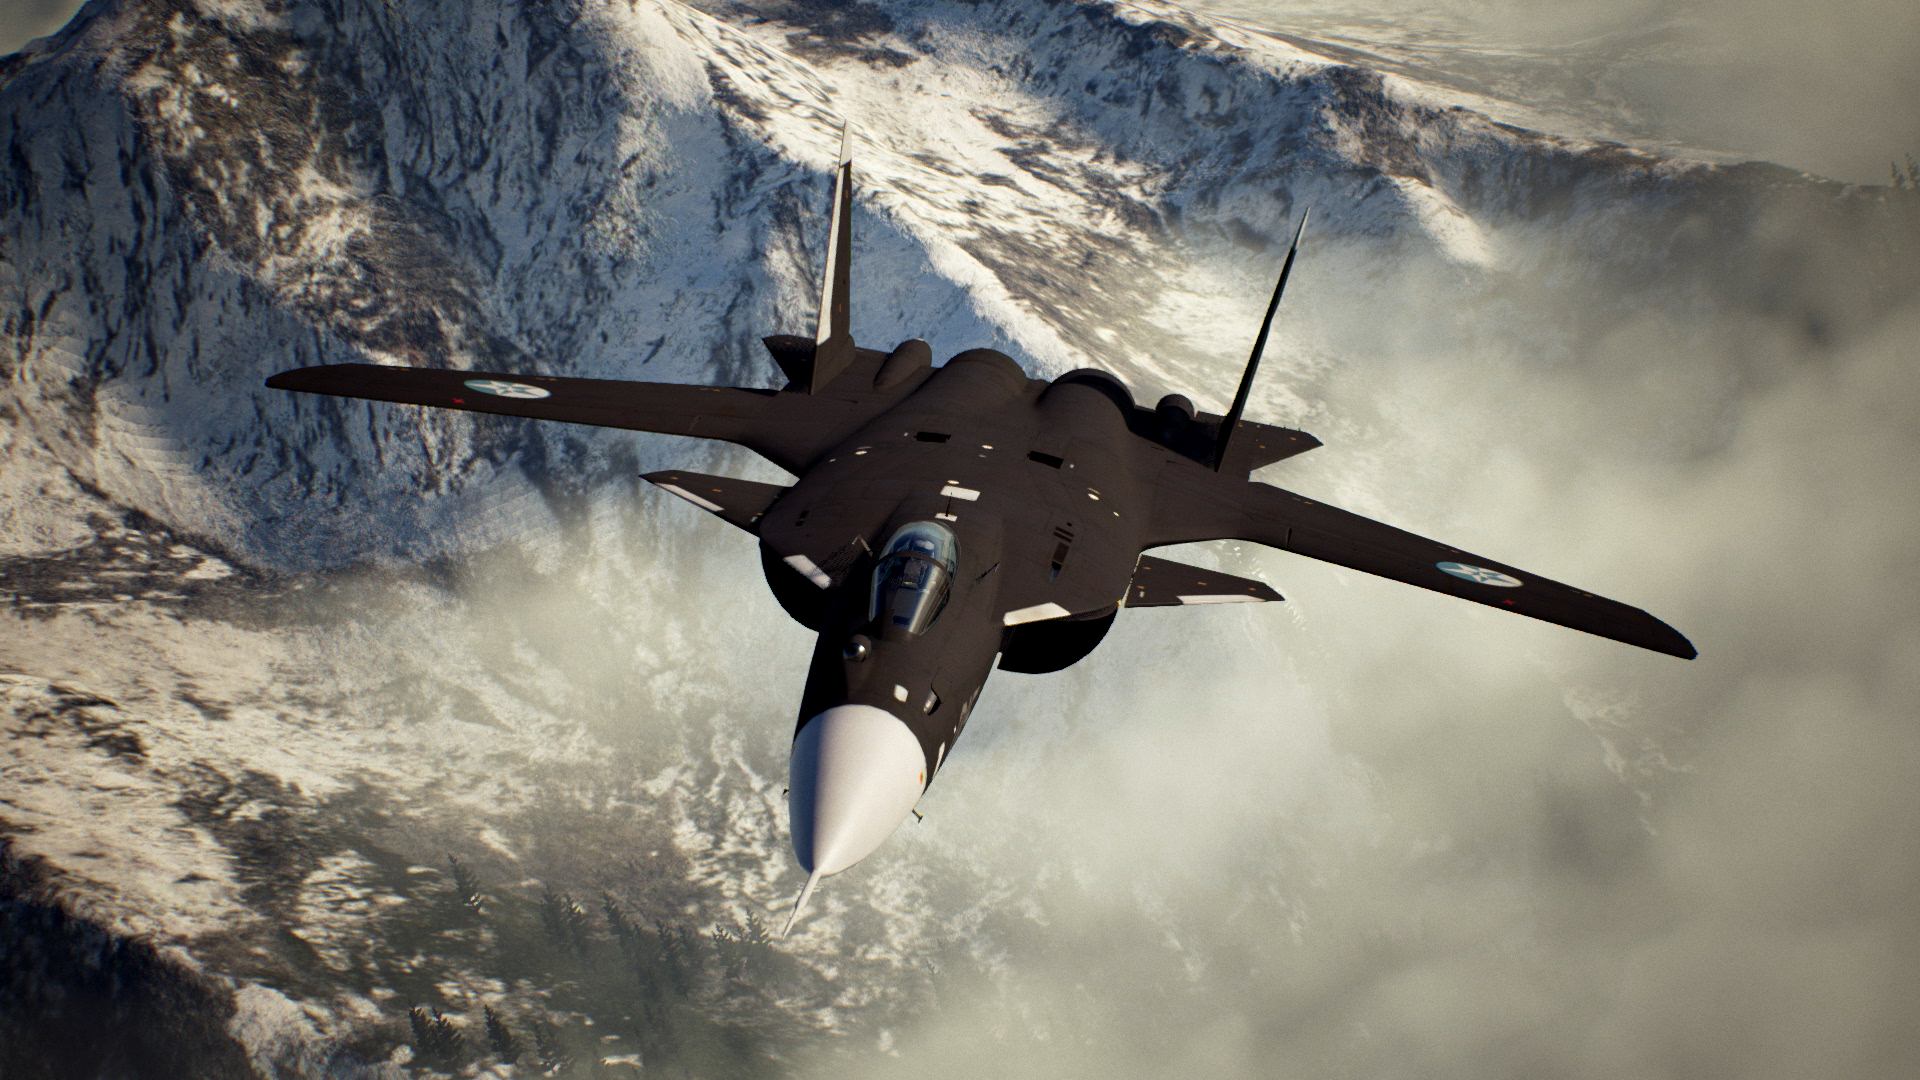 Check Out More Footage of Ace Combat 7